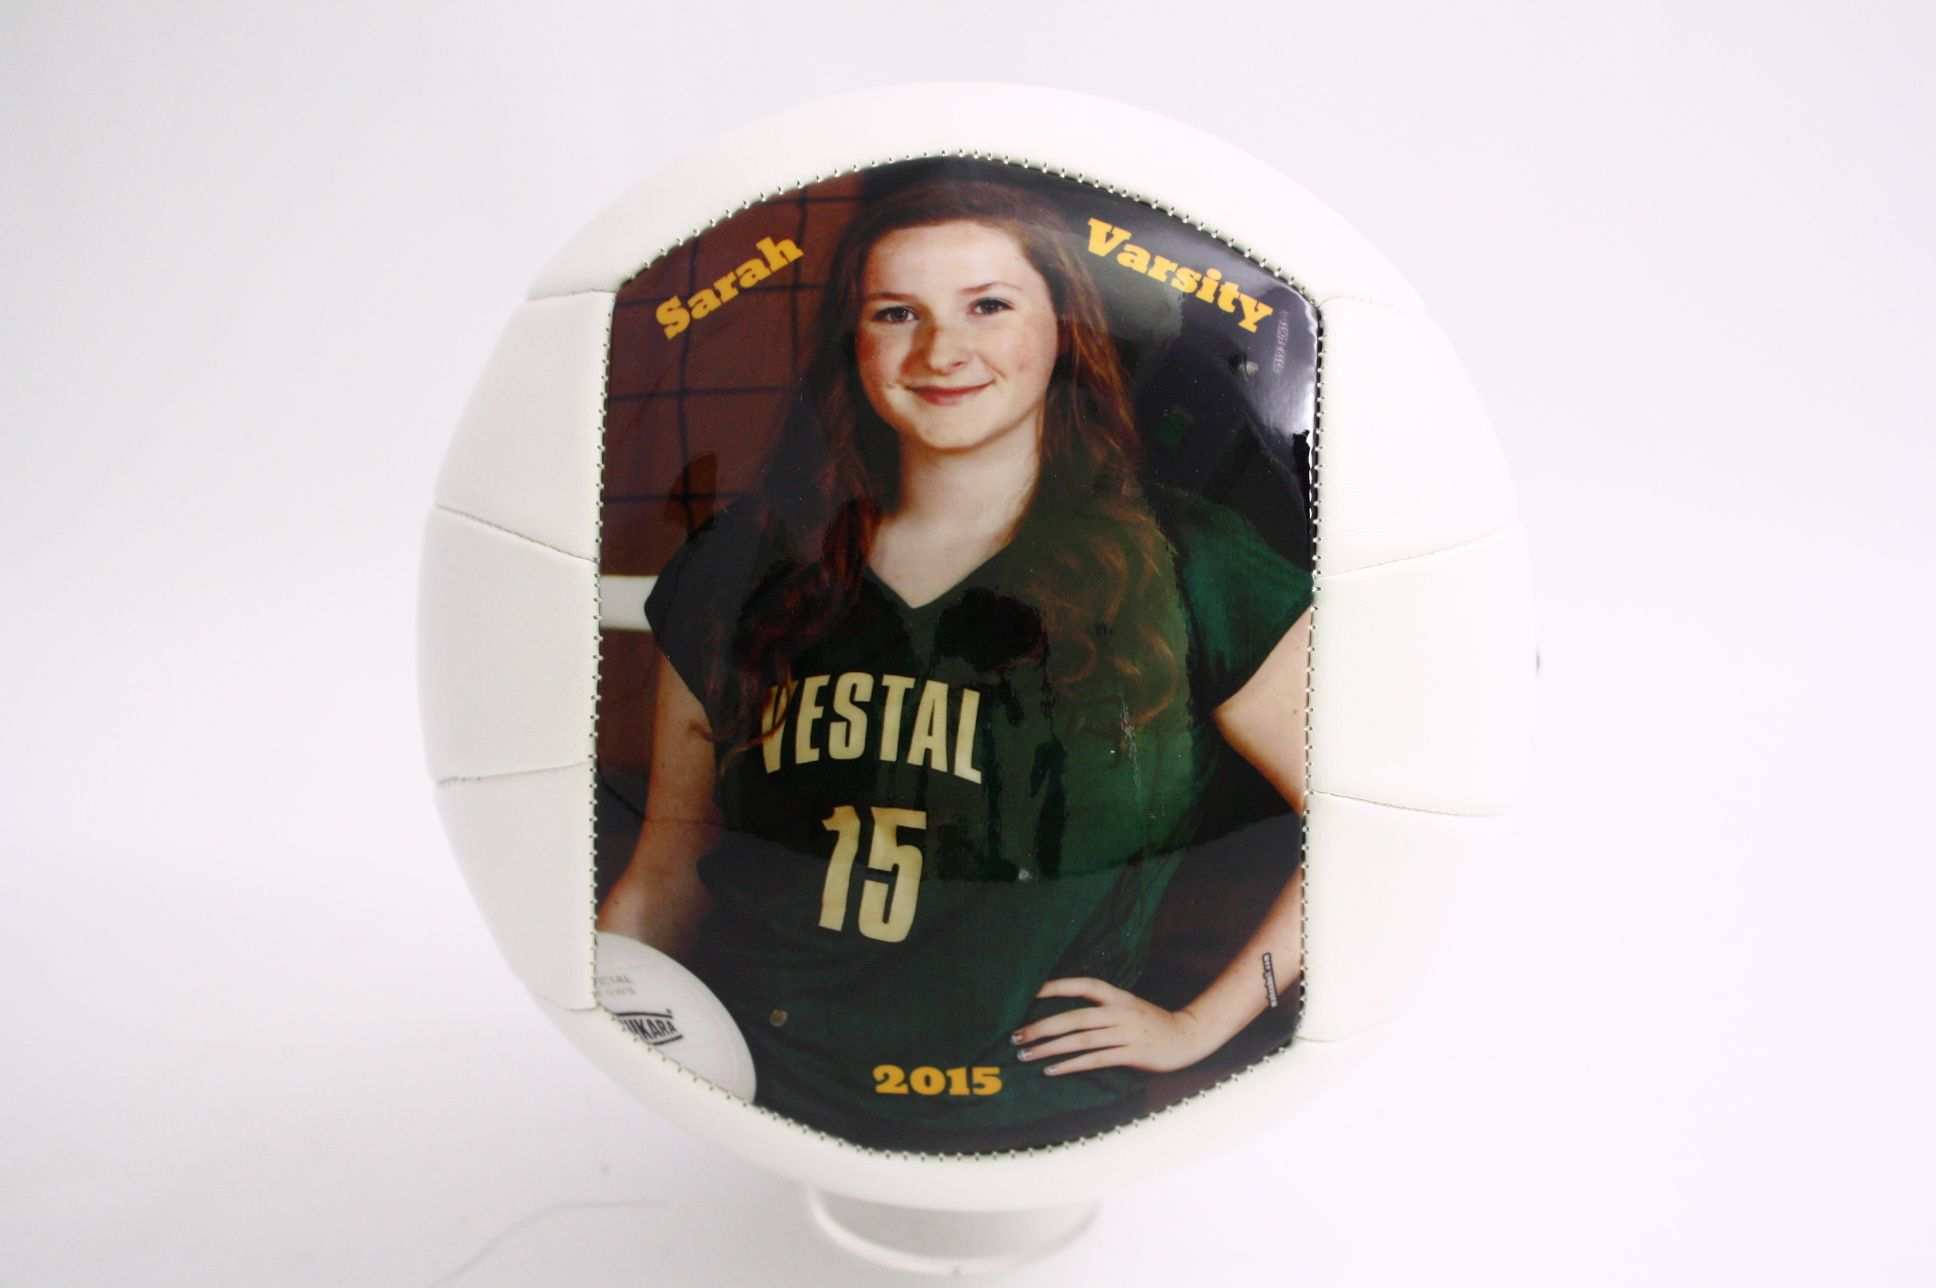 Customized Volleyball With Your Own Pictures And Text Capture The Smile And Make It Last Forever With This Unique Sp Sport Volleyball Sports Gifts Volleyballs